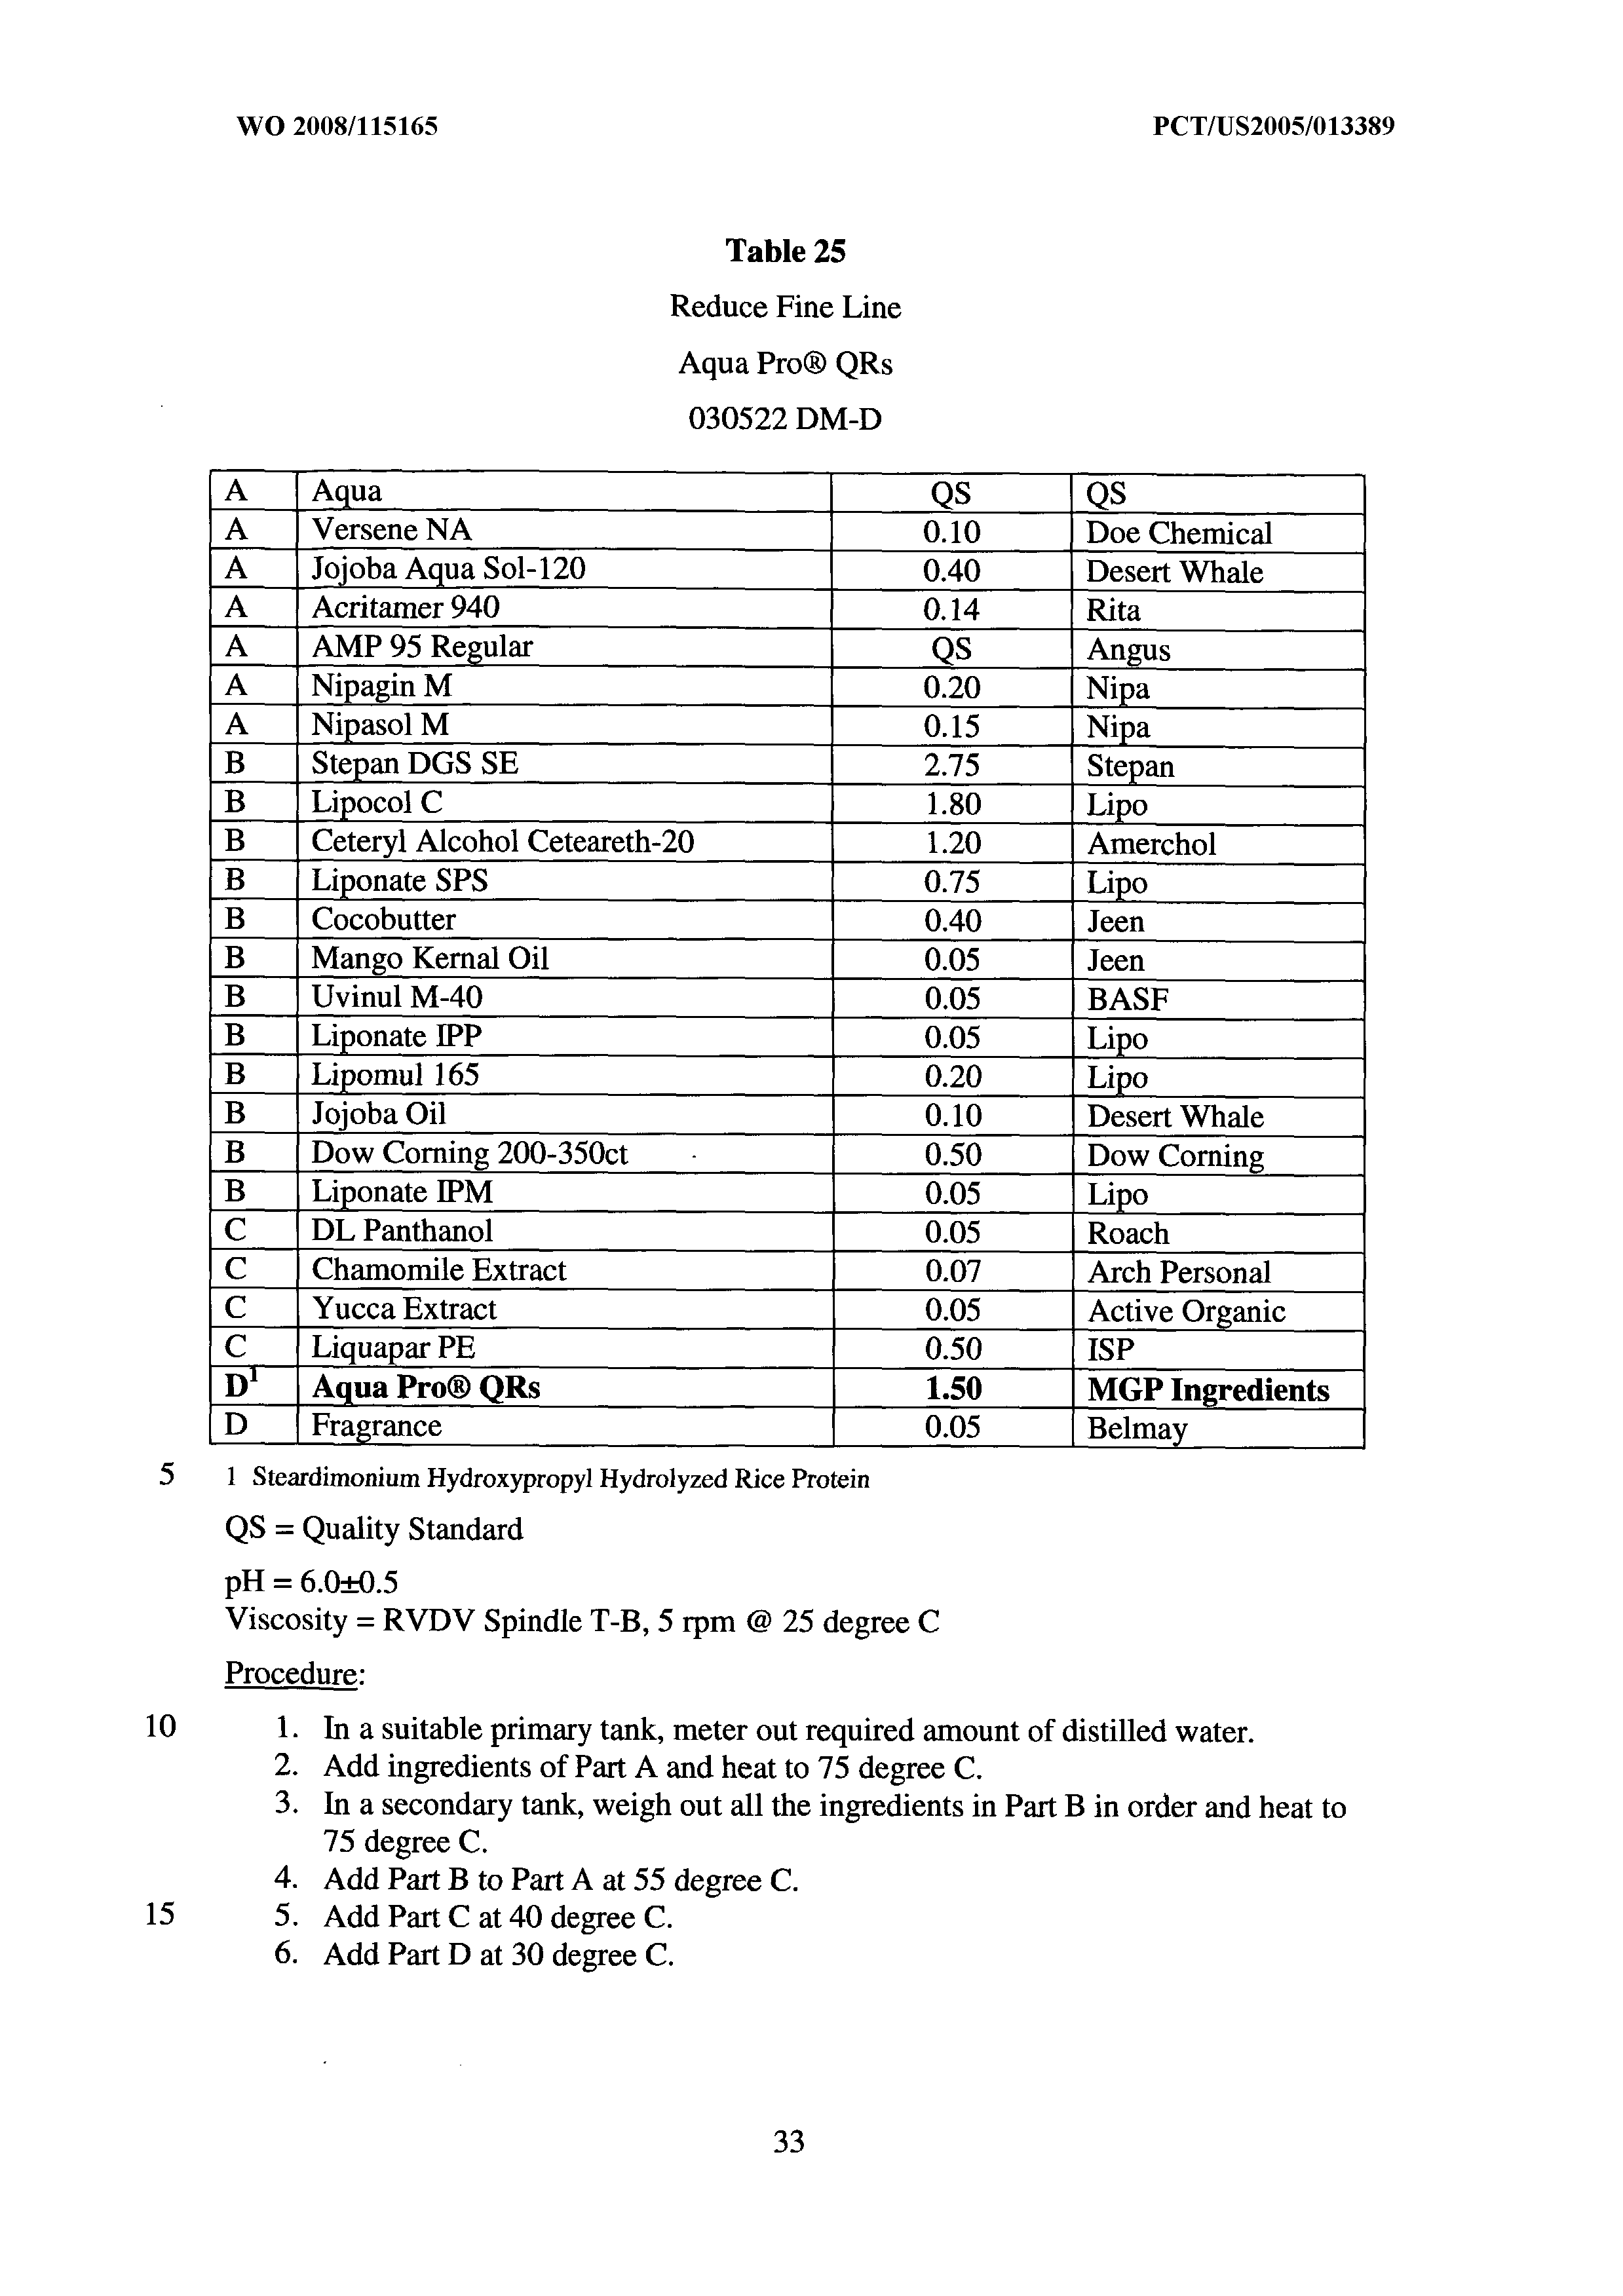 WO 2008/115165 A2 - Method Of Hydrolyzing Rice Protein